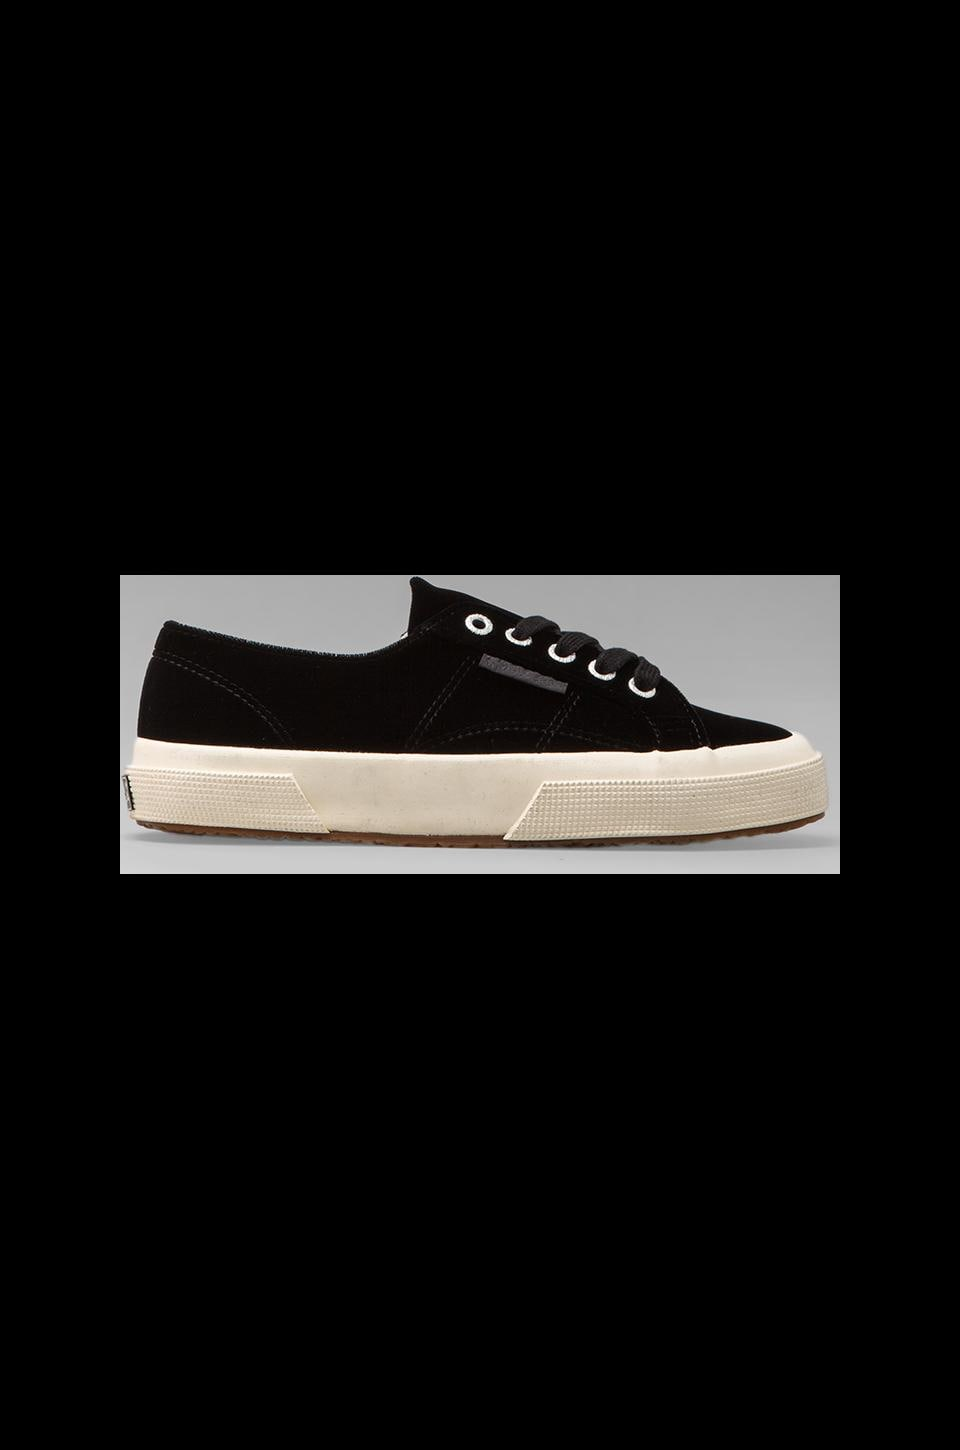 Superga Velvet Sneaker in Black